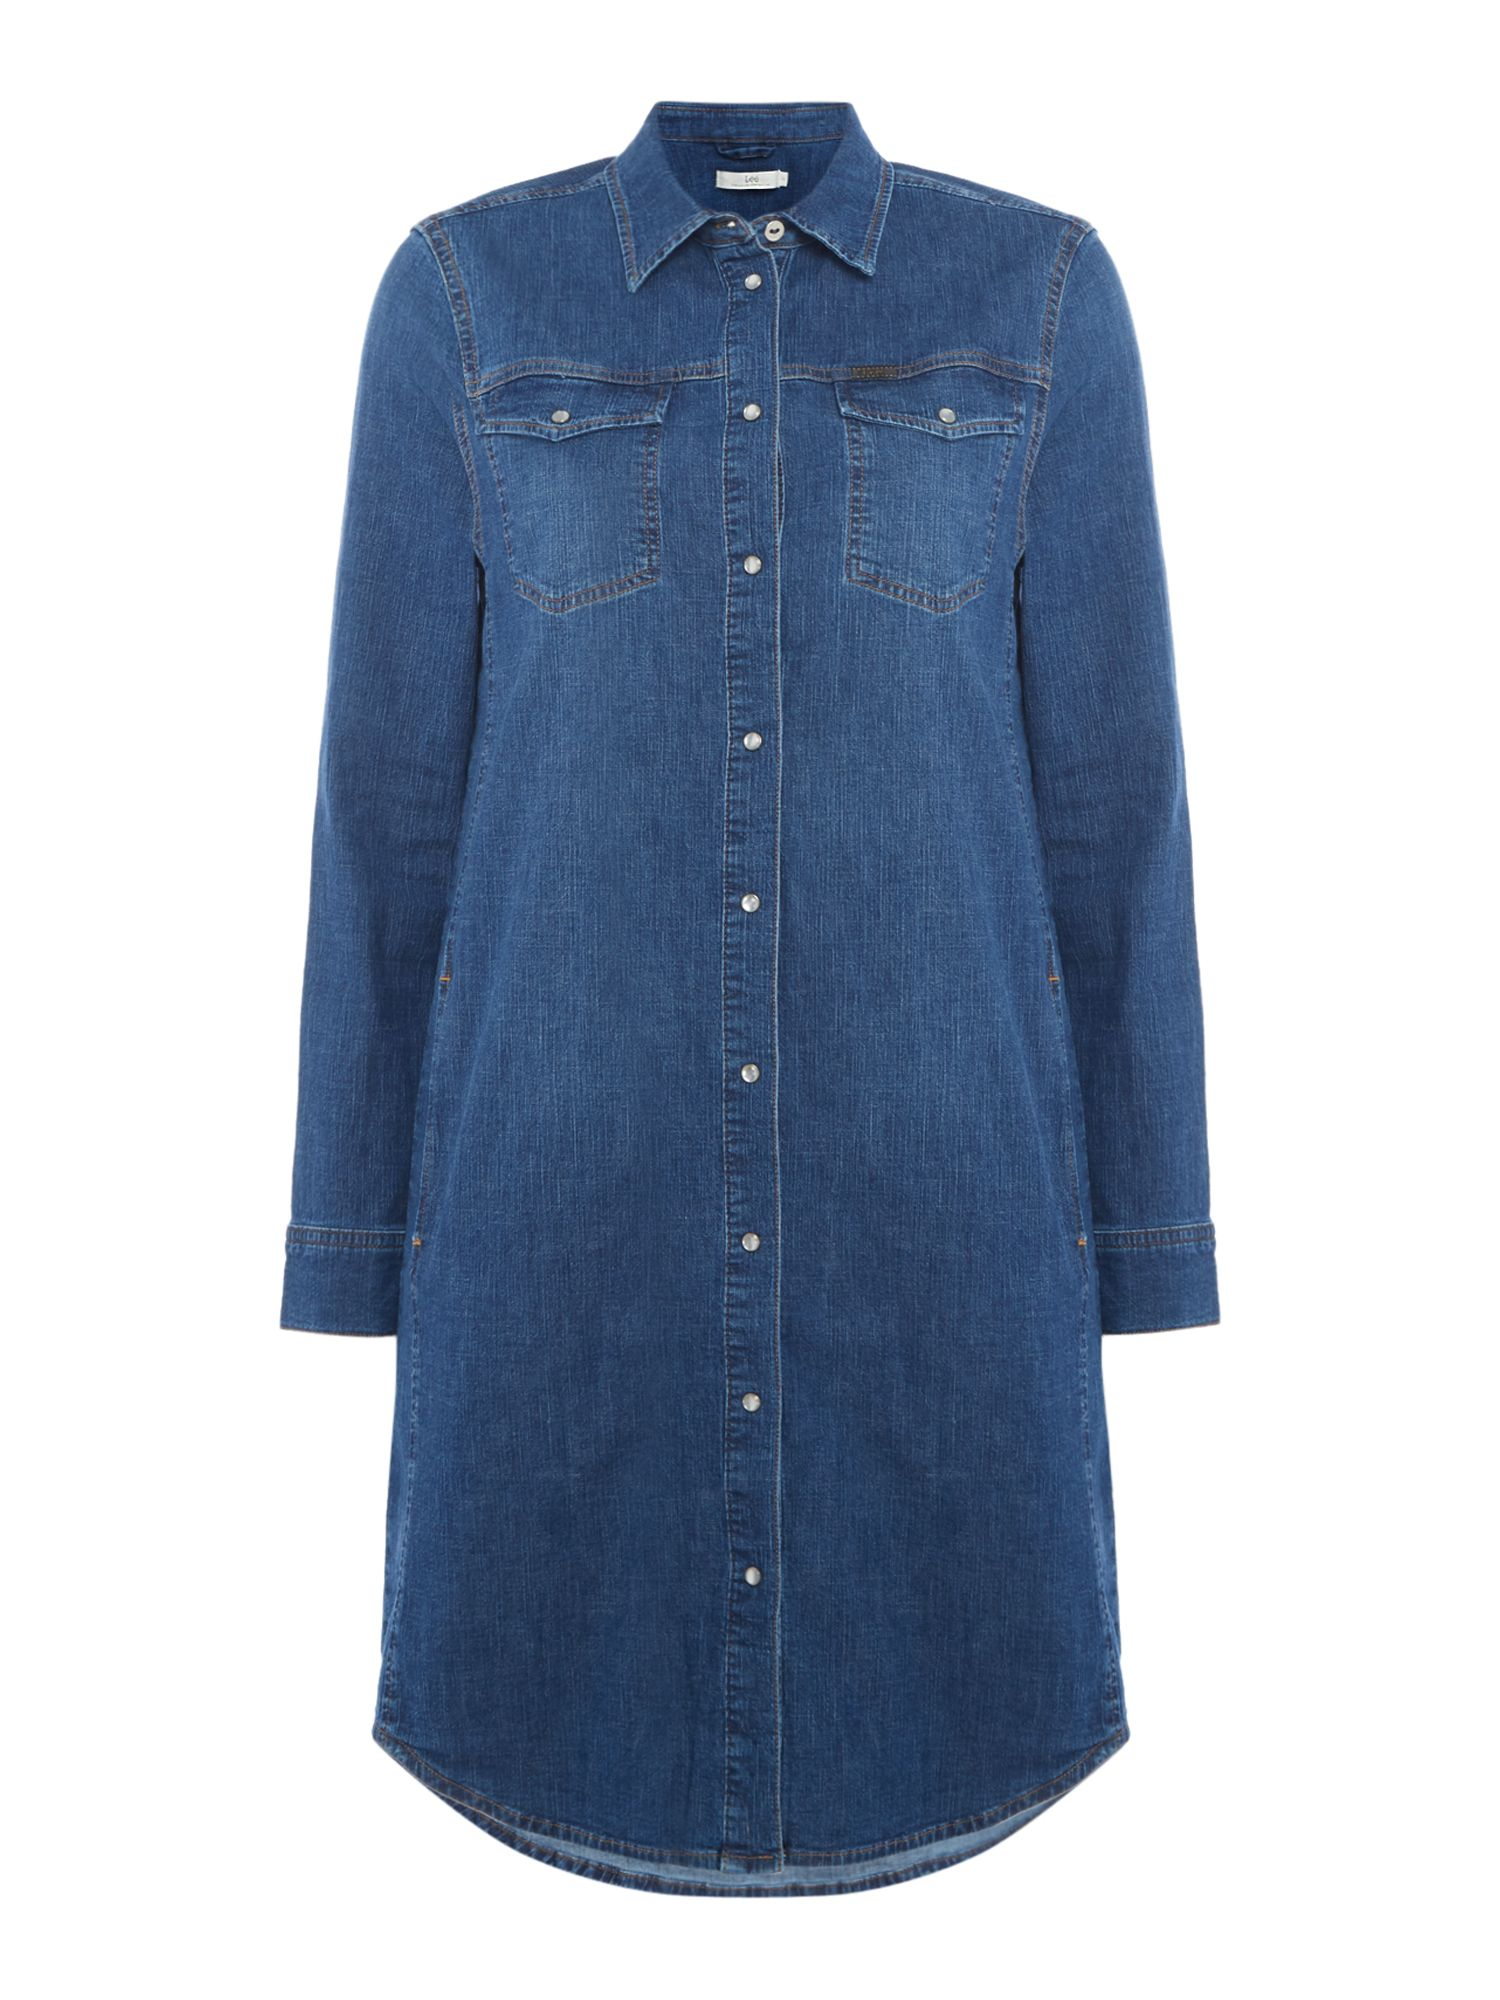 Lee Denim Shirt Dress In Mid Worn, Denim Mid Wash